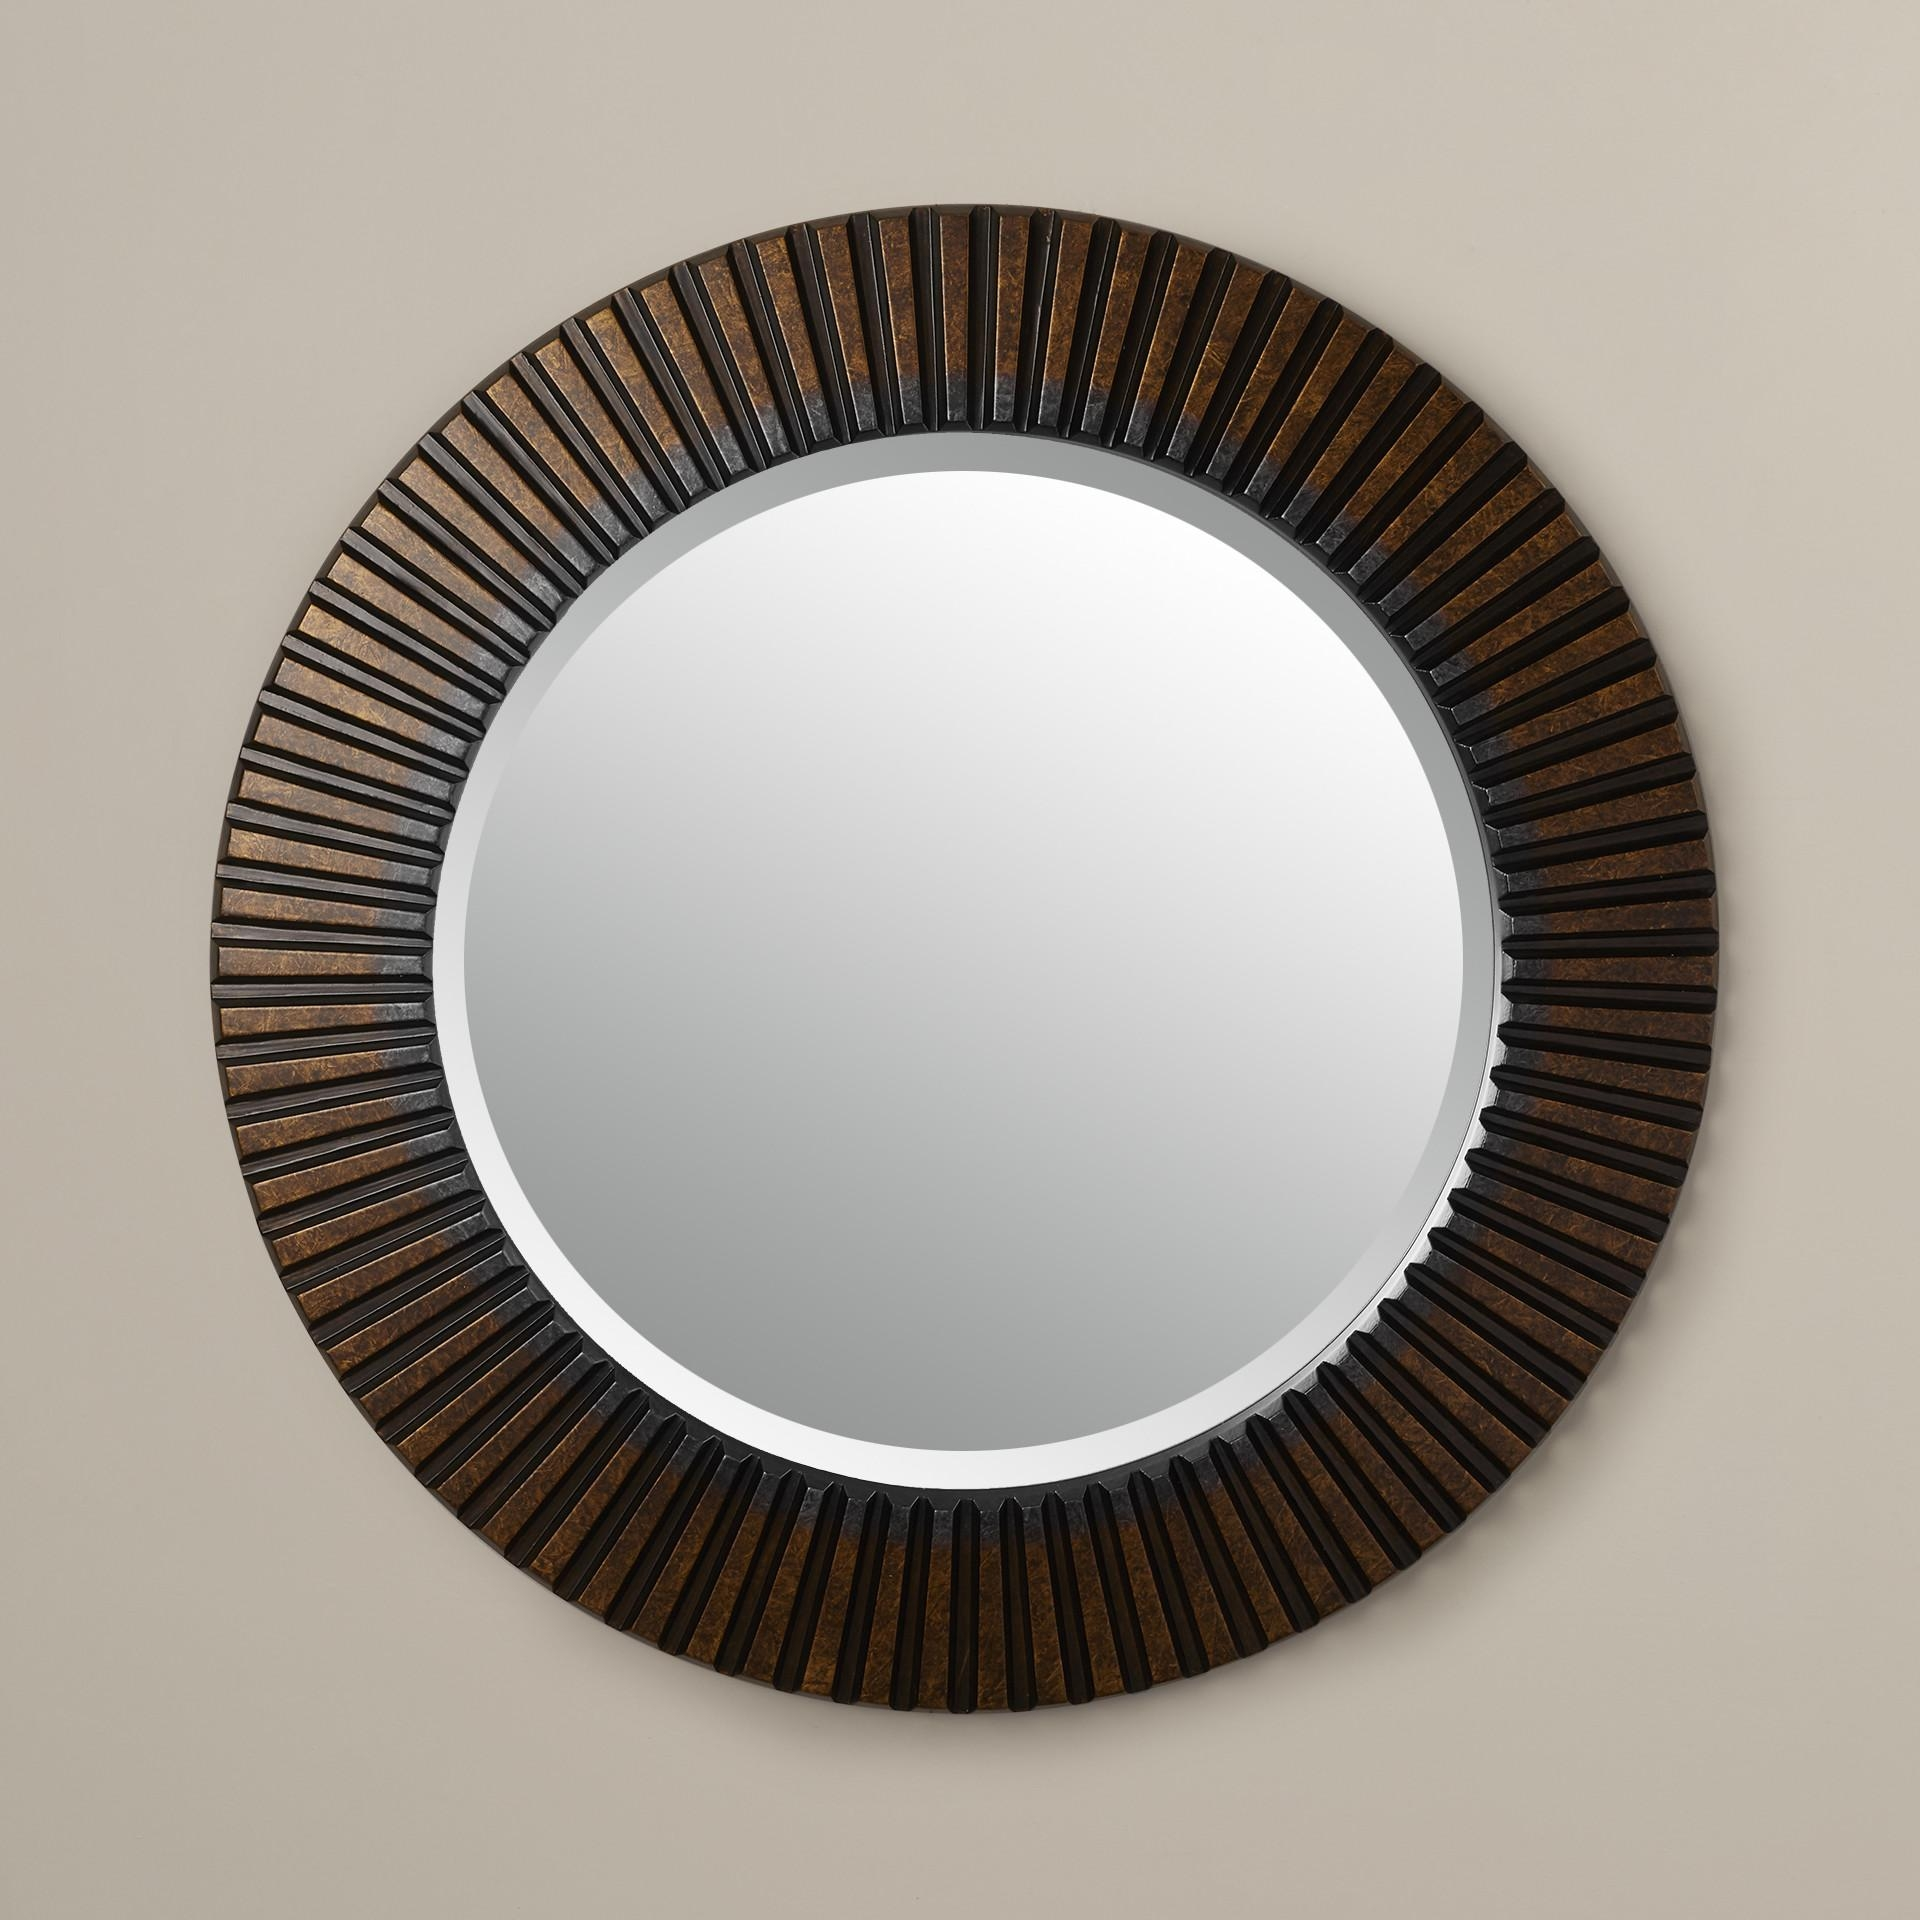 Round Wall Mirror Metal Frame – Choose The Elegant Decoration With Regarding Gold Round Mirrors (Image 17 of 20)